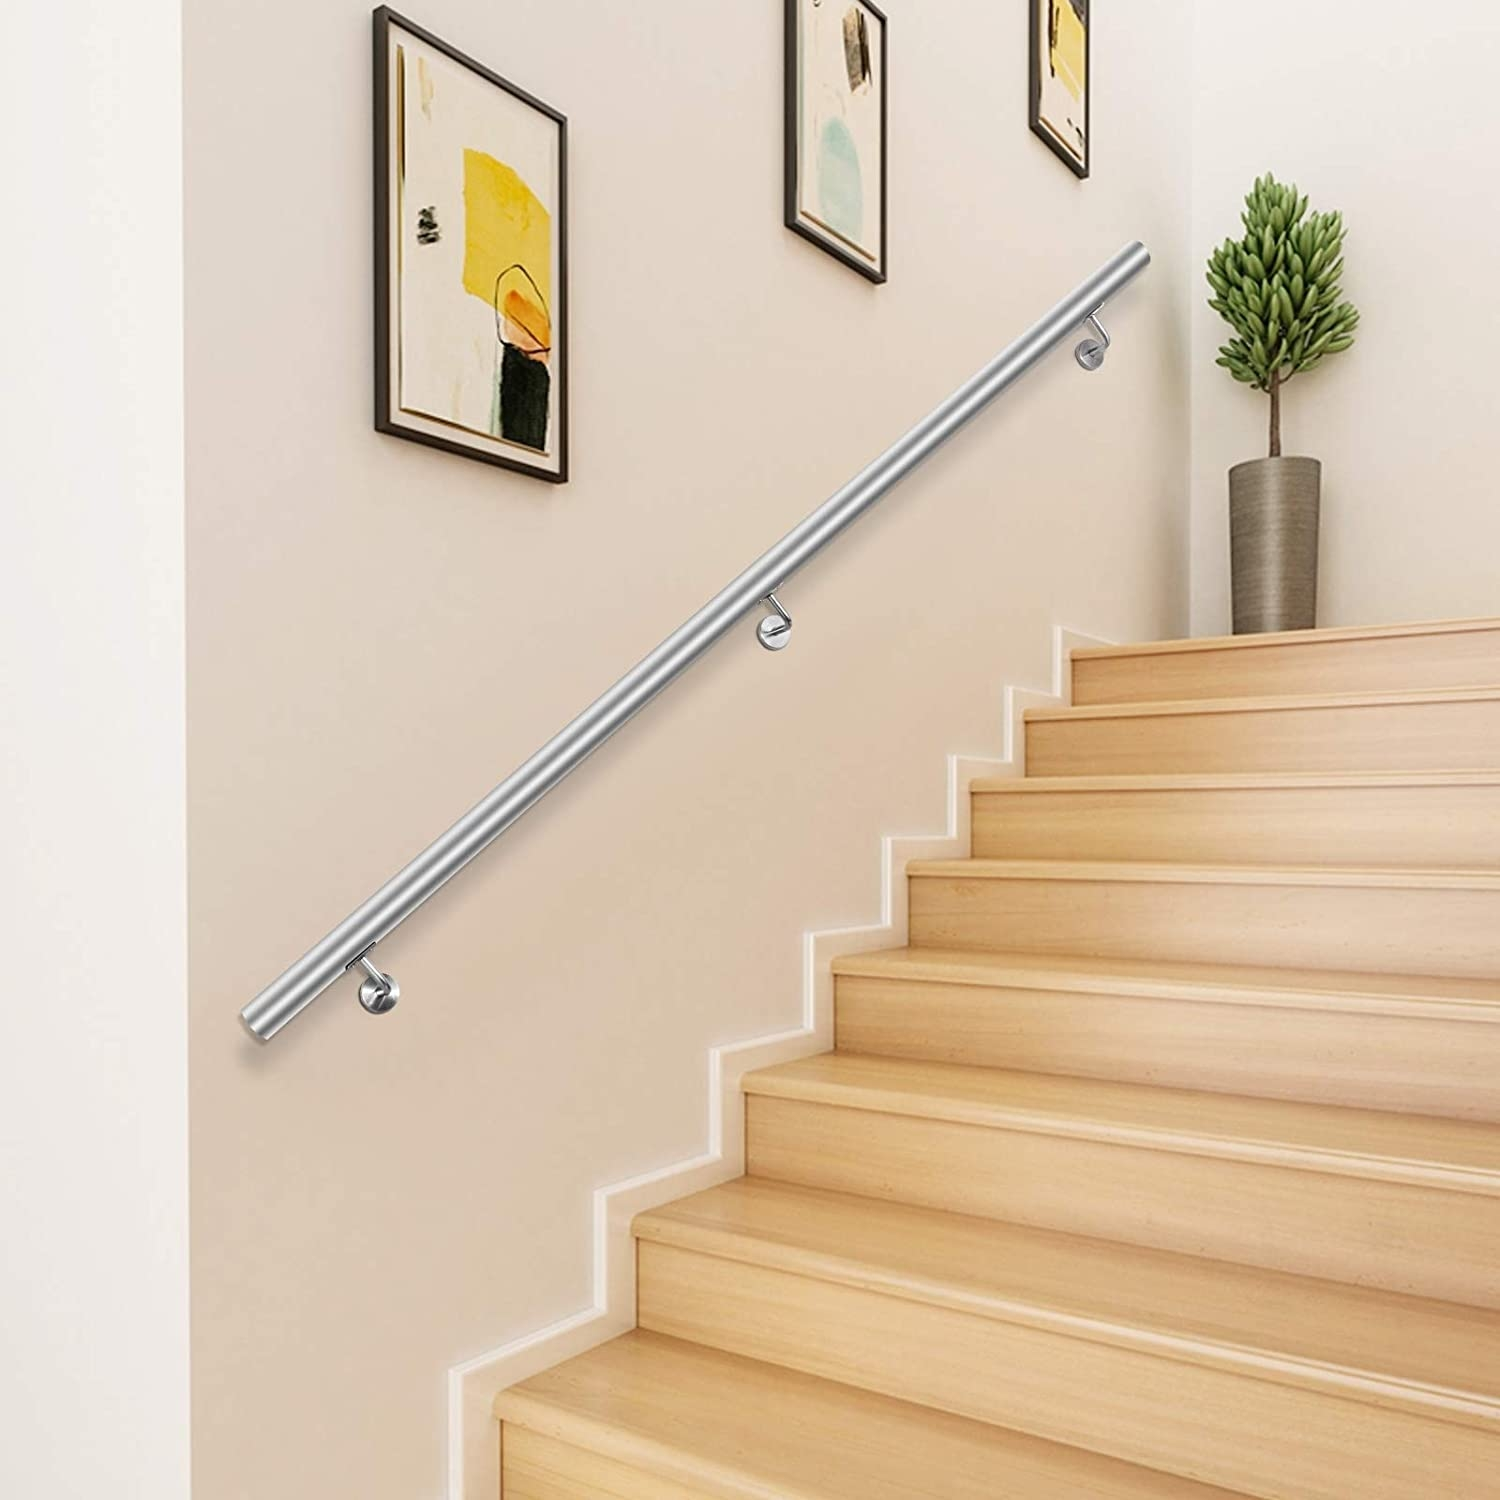 Happybuy 3 Feet Stair Handrail Stainless Steel Wall Stair Rail | Wooden Handrails For Stairs Interior | Design | Brown | Simple | Wall Mounted | Indoor